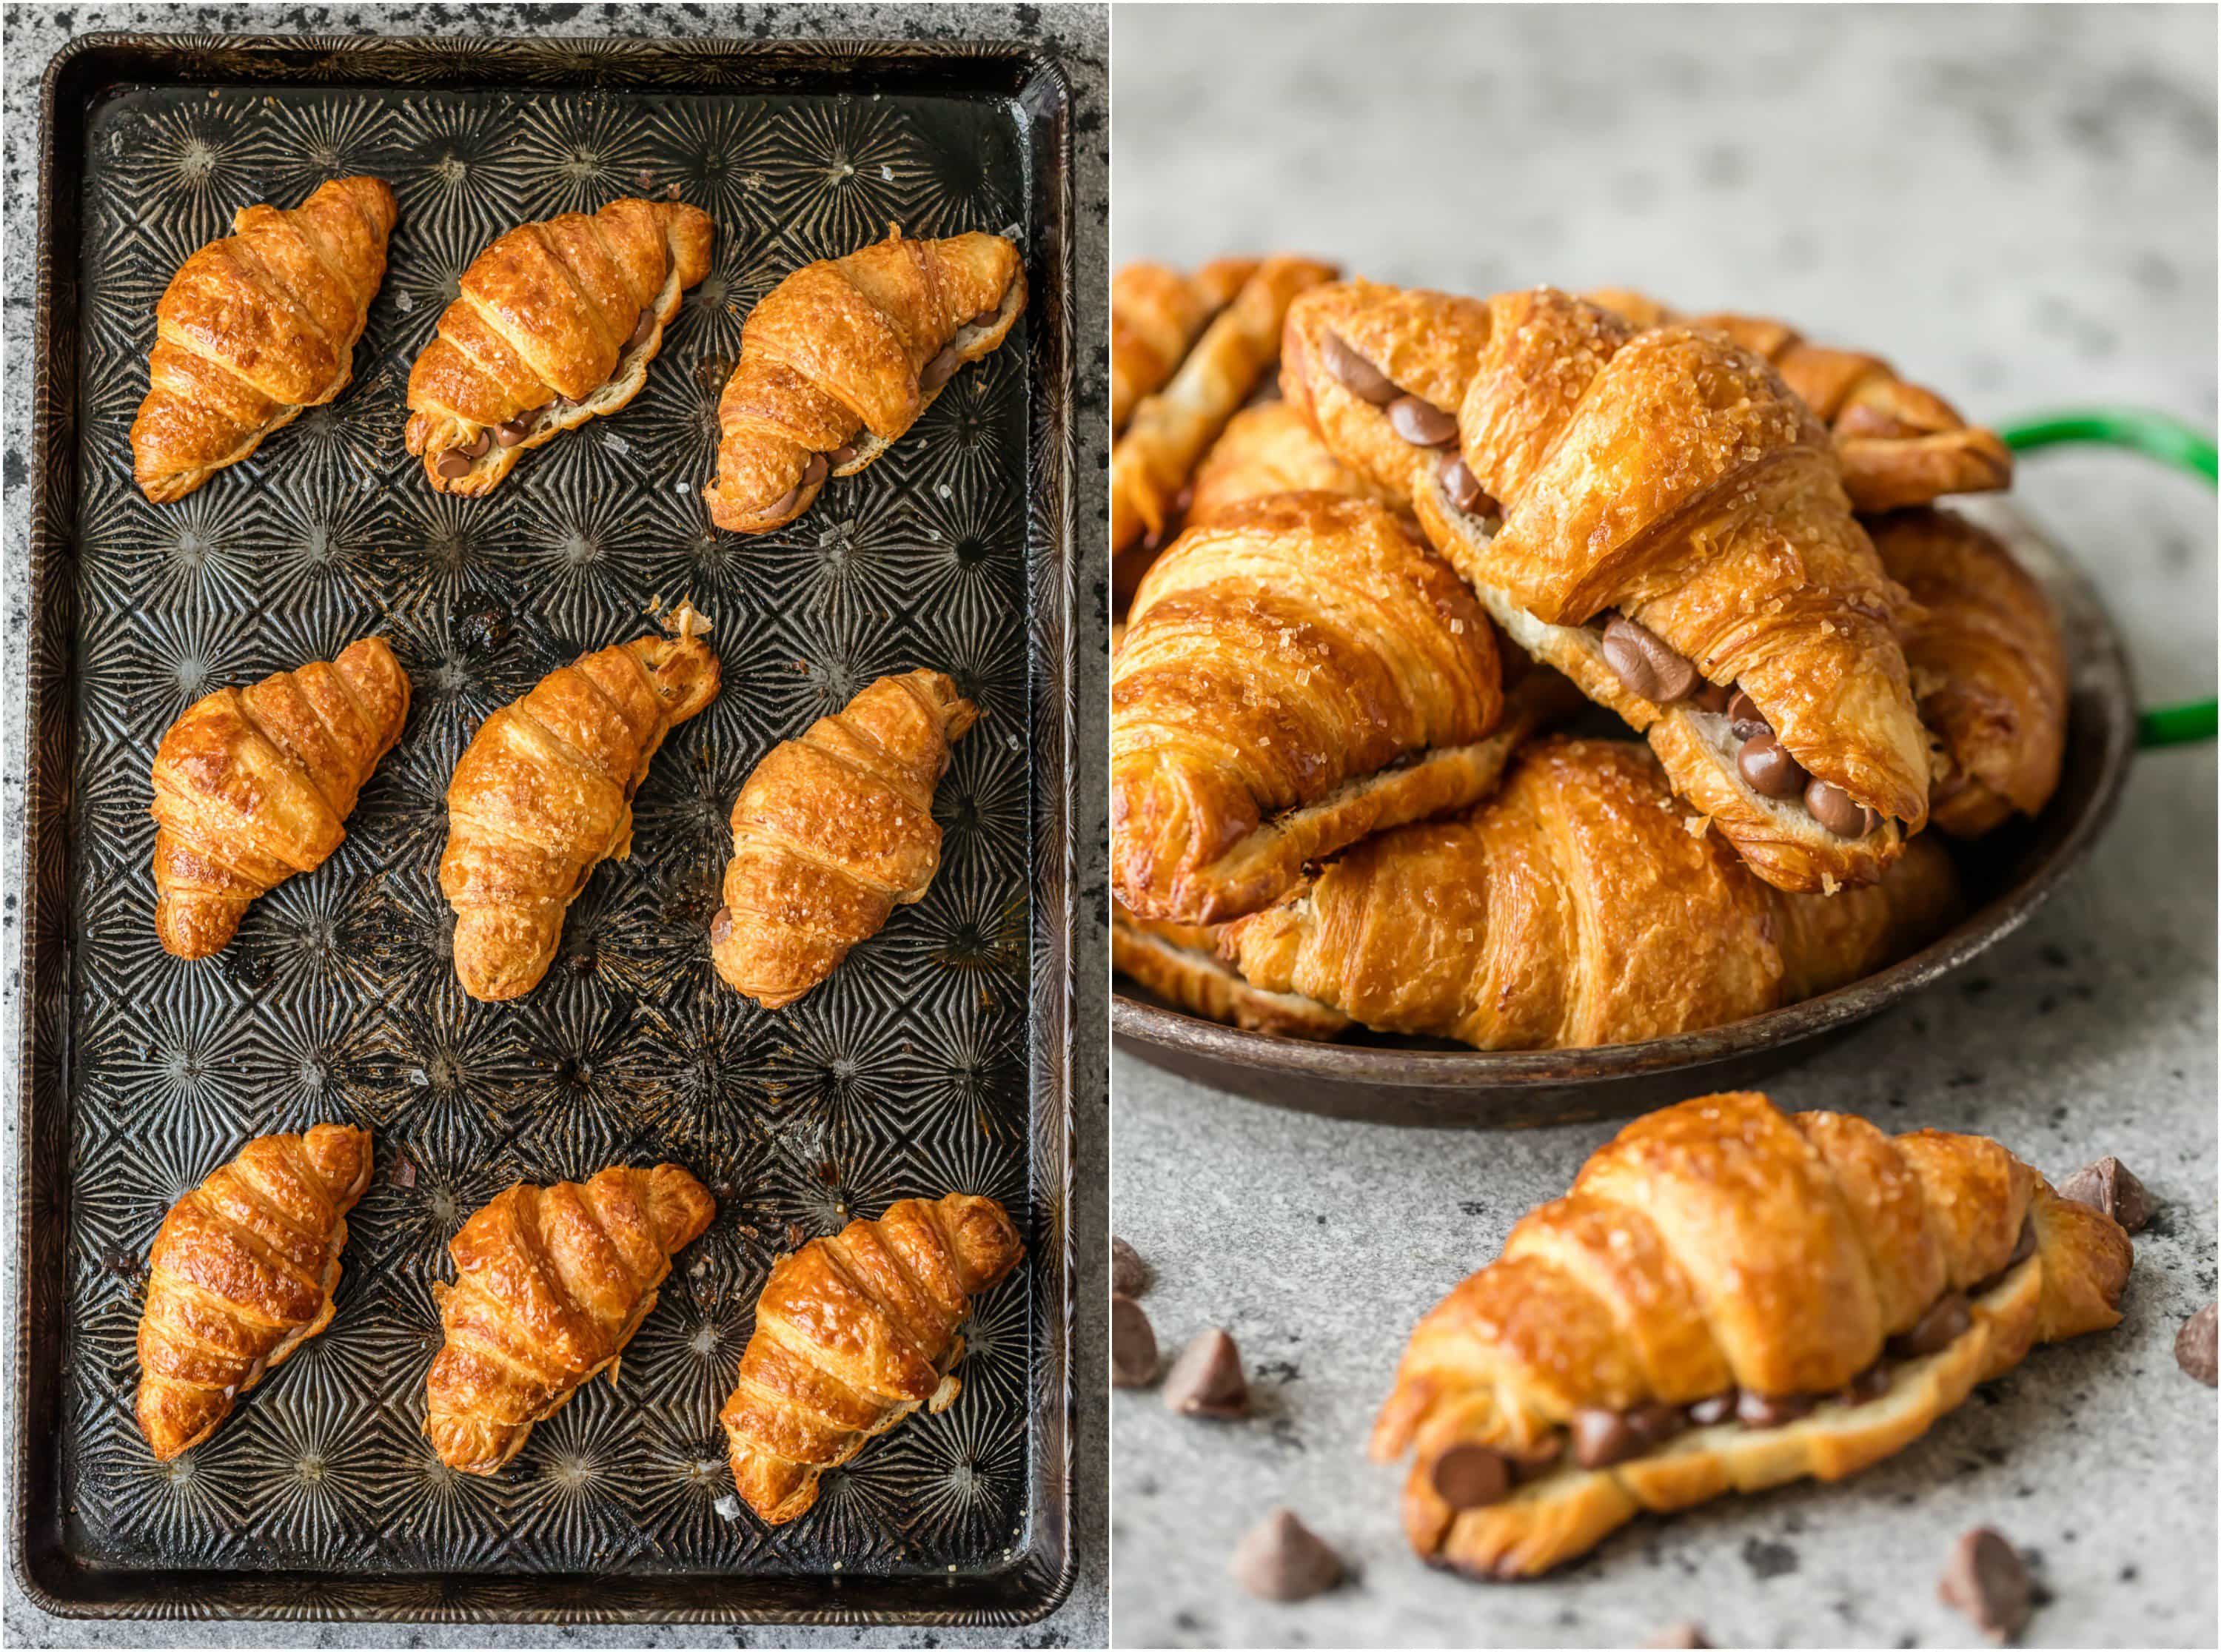 Chocolate croissant recipes on a baking tray